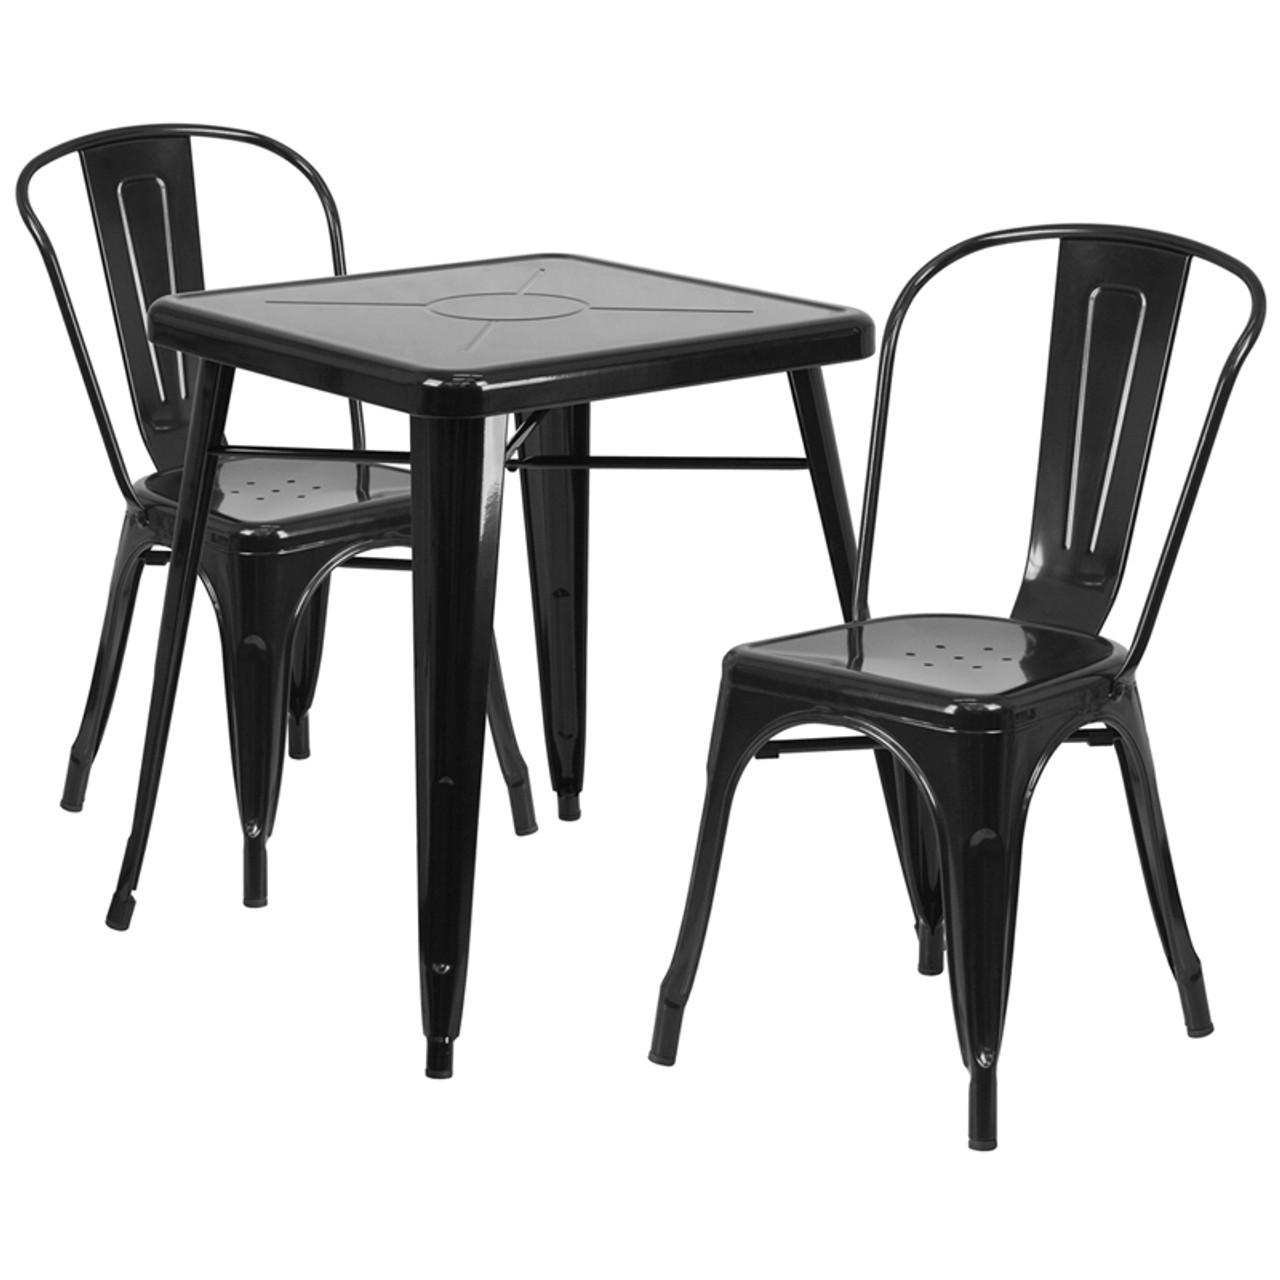 metal chairs and table french for sale indoor outdoor cafe 3 piece set 23 75 square with 2 stack